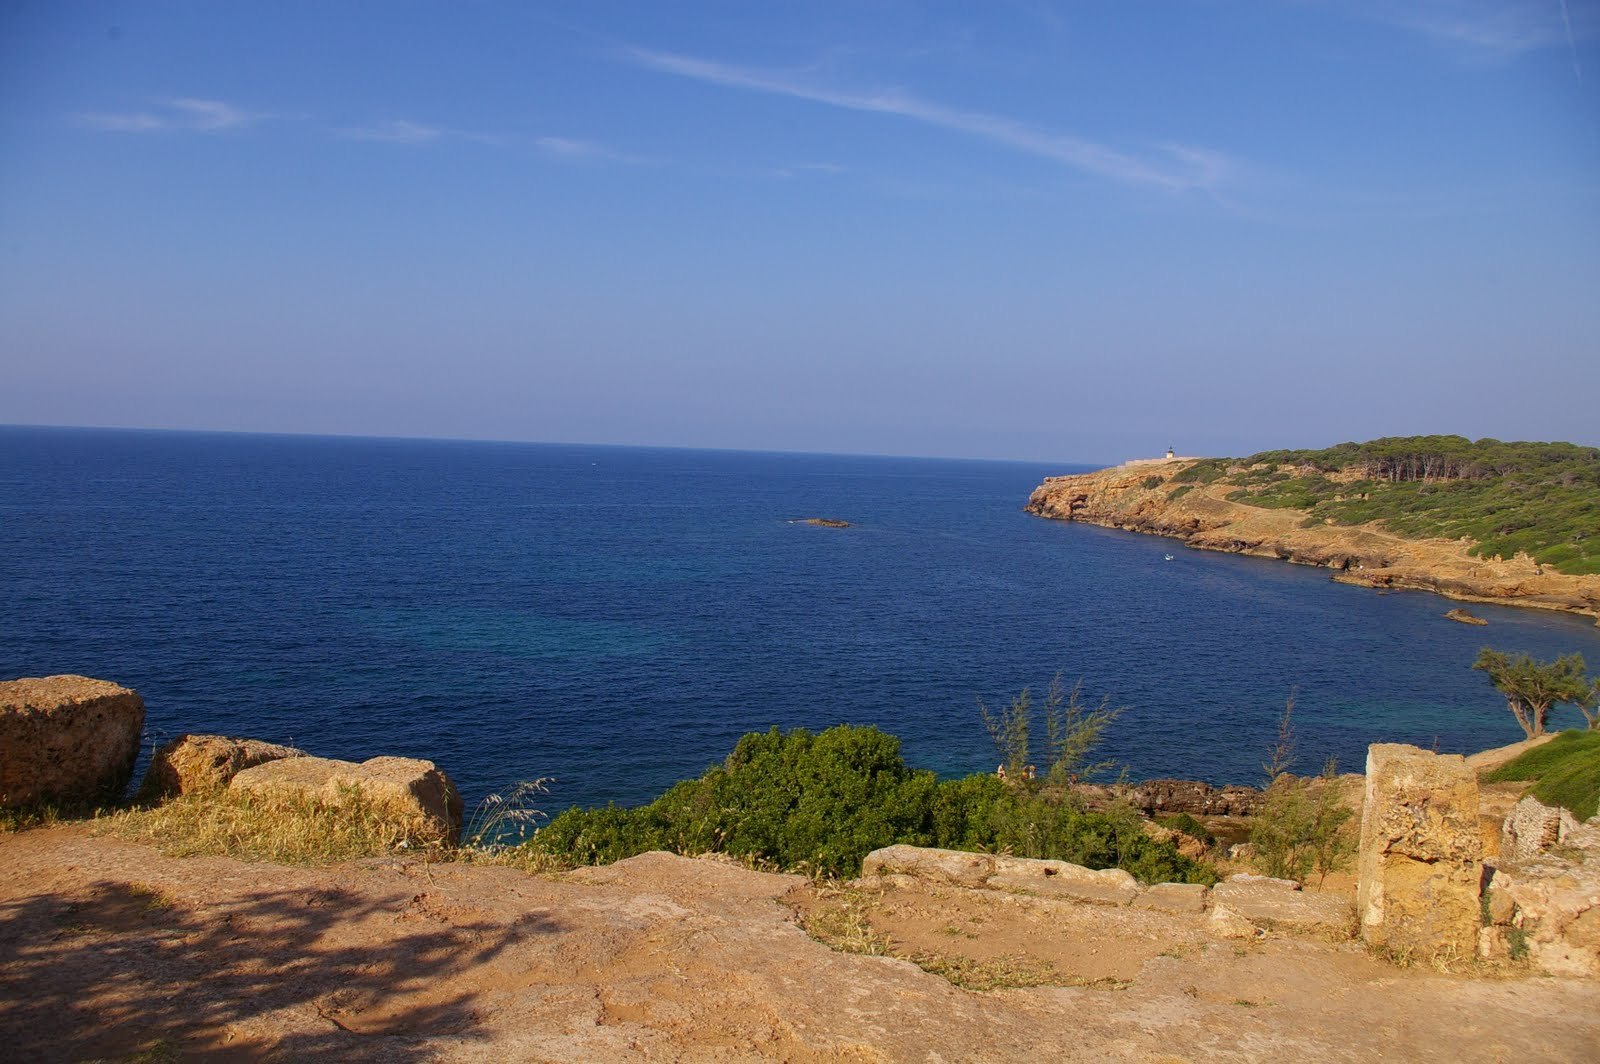 The Mediterranean Sea The Mediterranean Sea Helps Protect Italy From Invaders Like The Alps Mountains The Mediterranean Sea Also Helps Romans Travel And